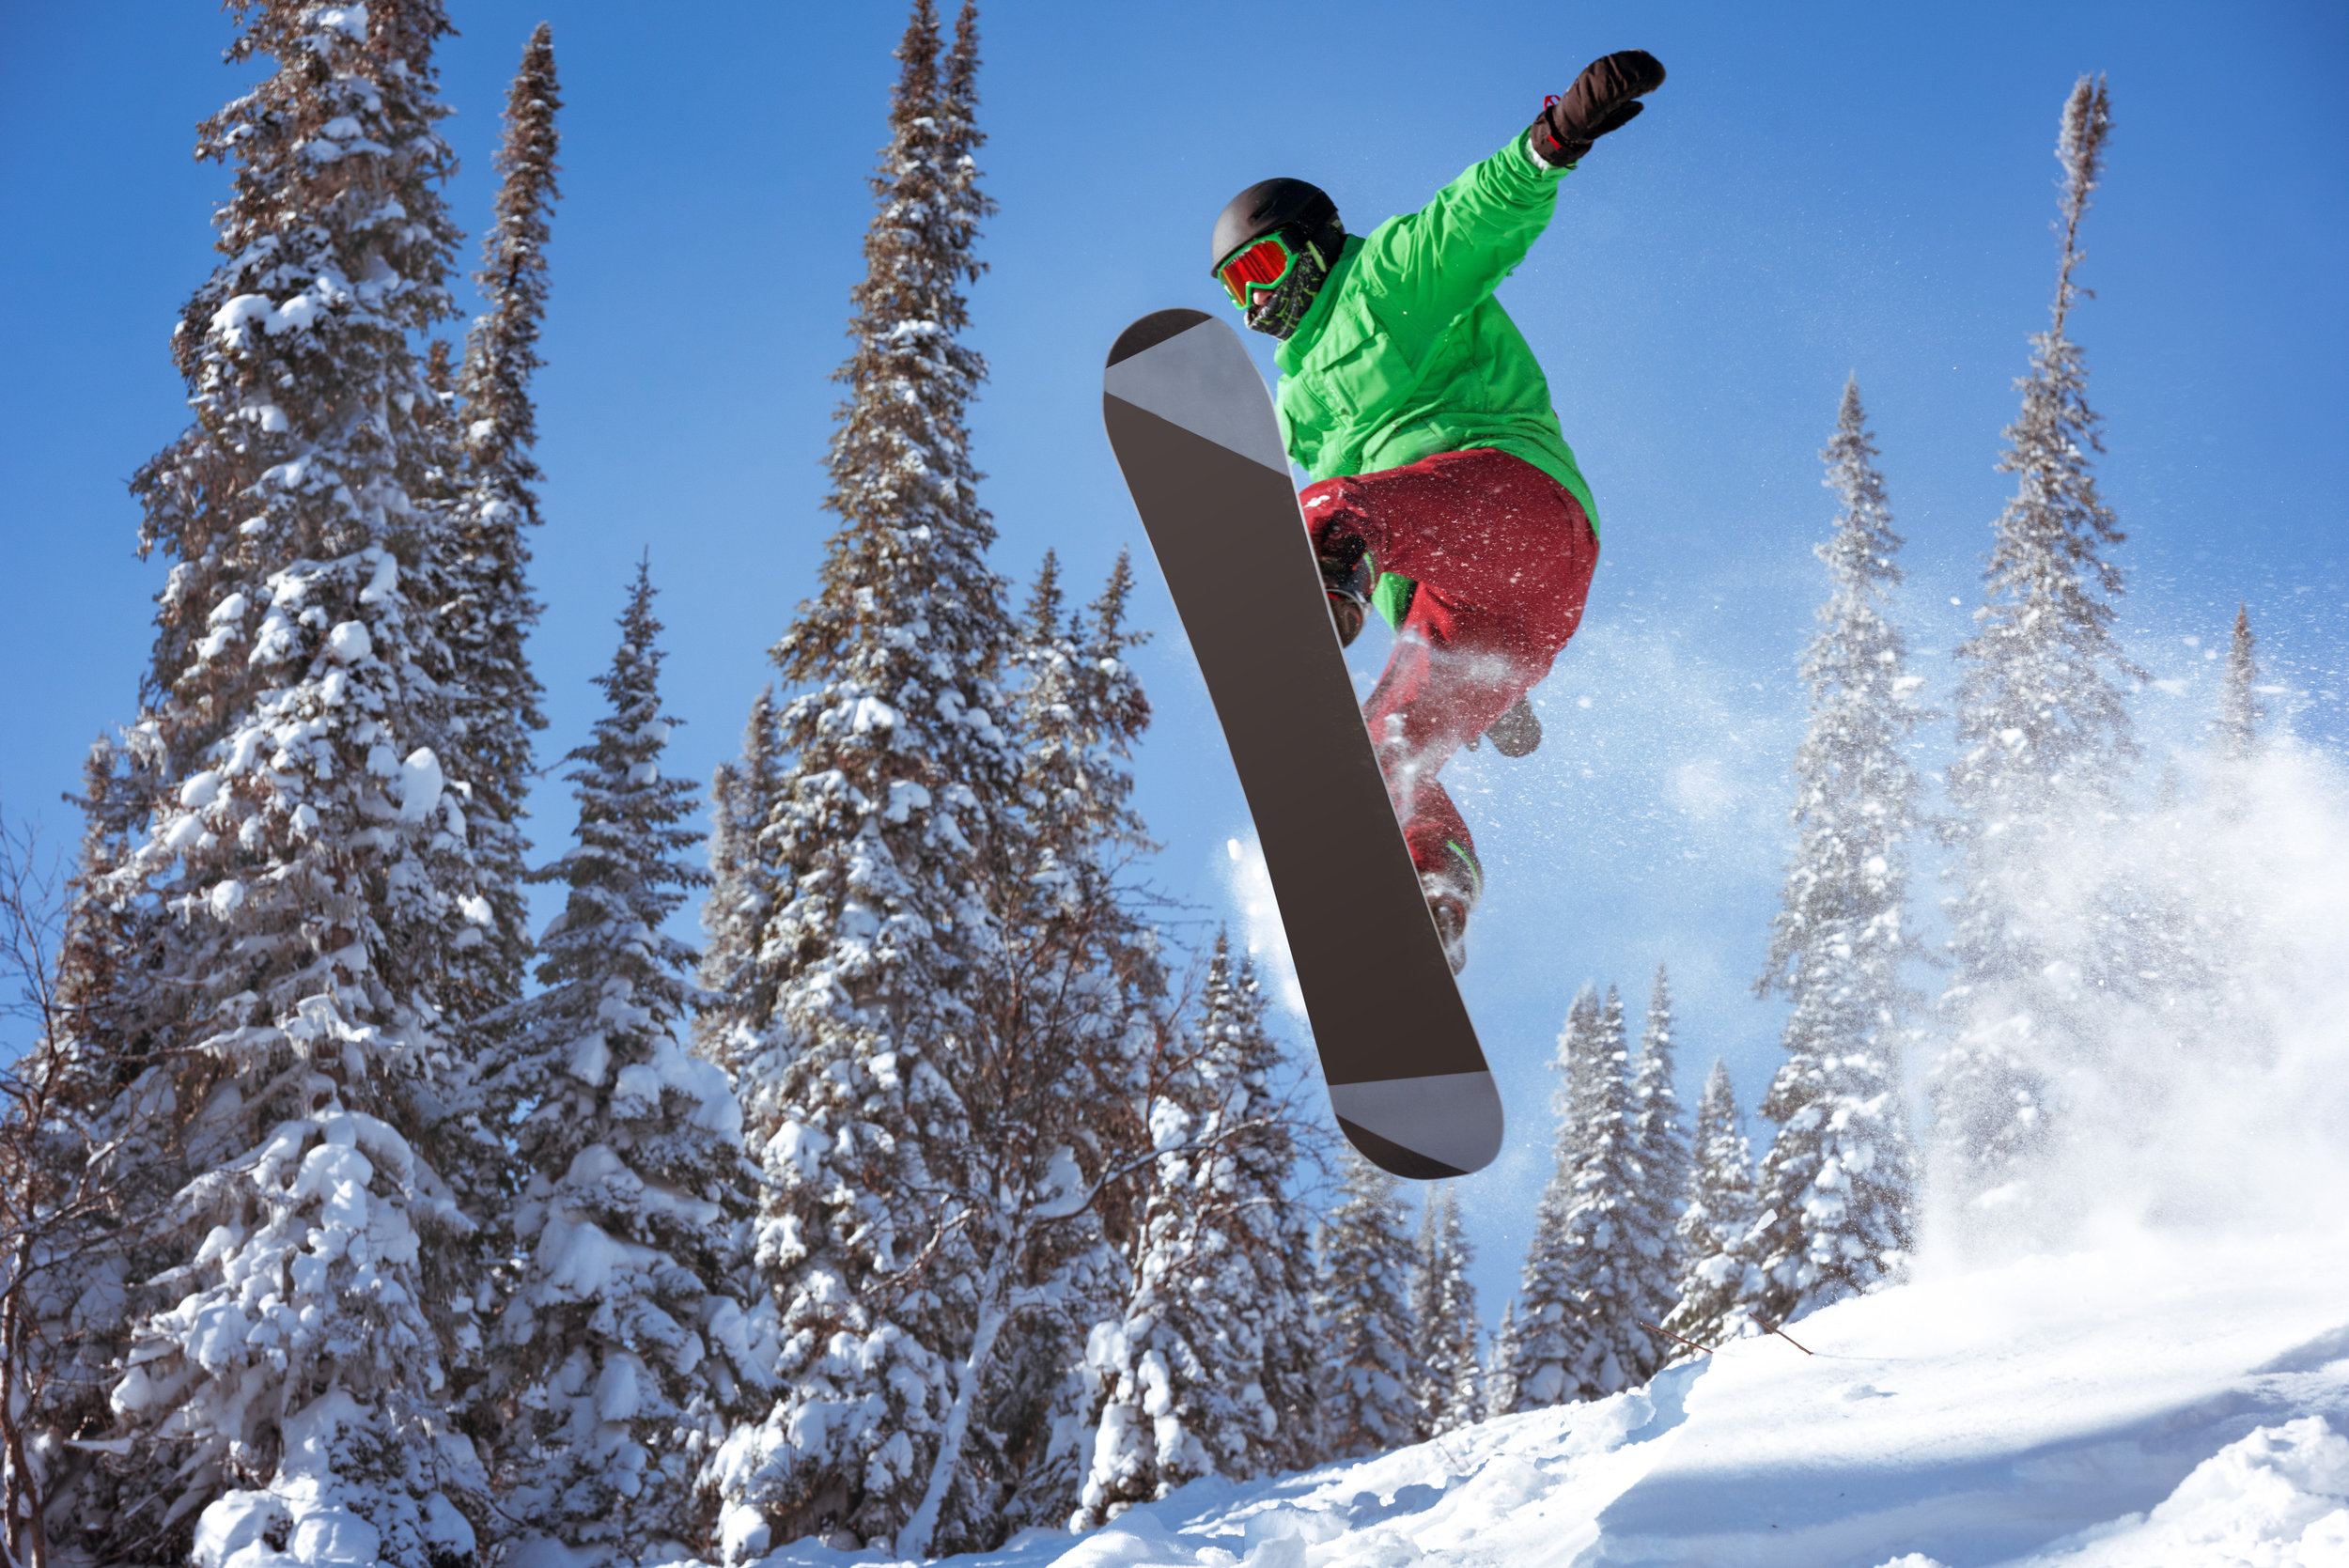 Action shot of a snowboarder in the air.